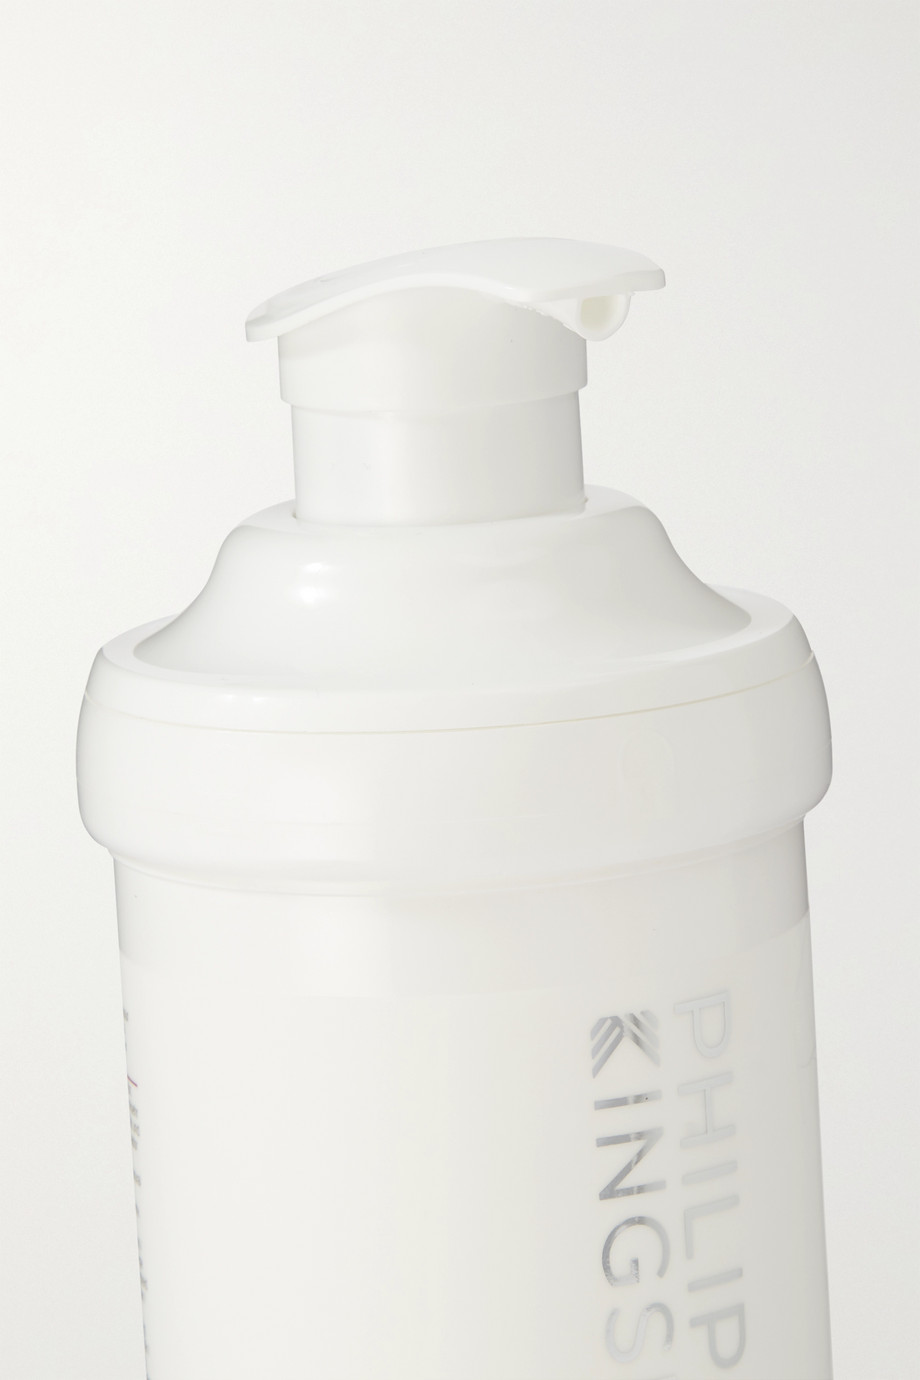 PHILIP KINGSLEY Elasticizer Extreme, 500ml